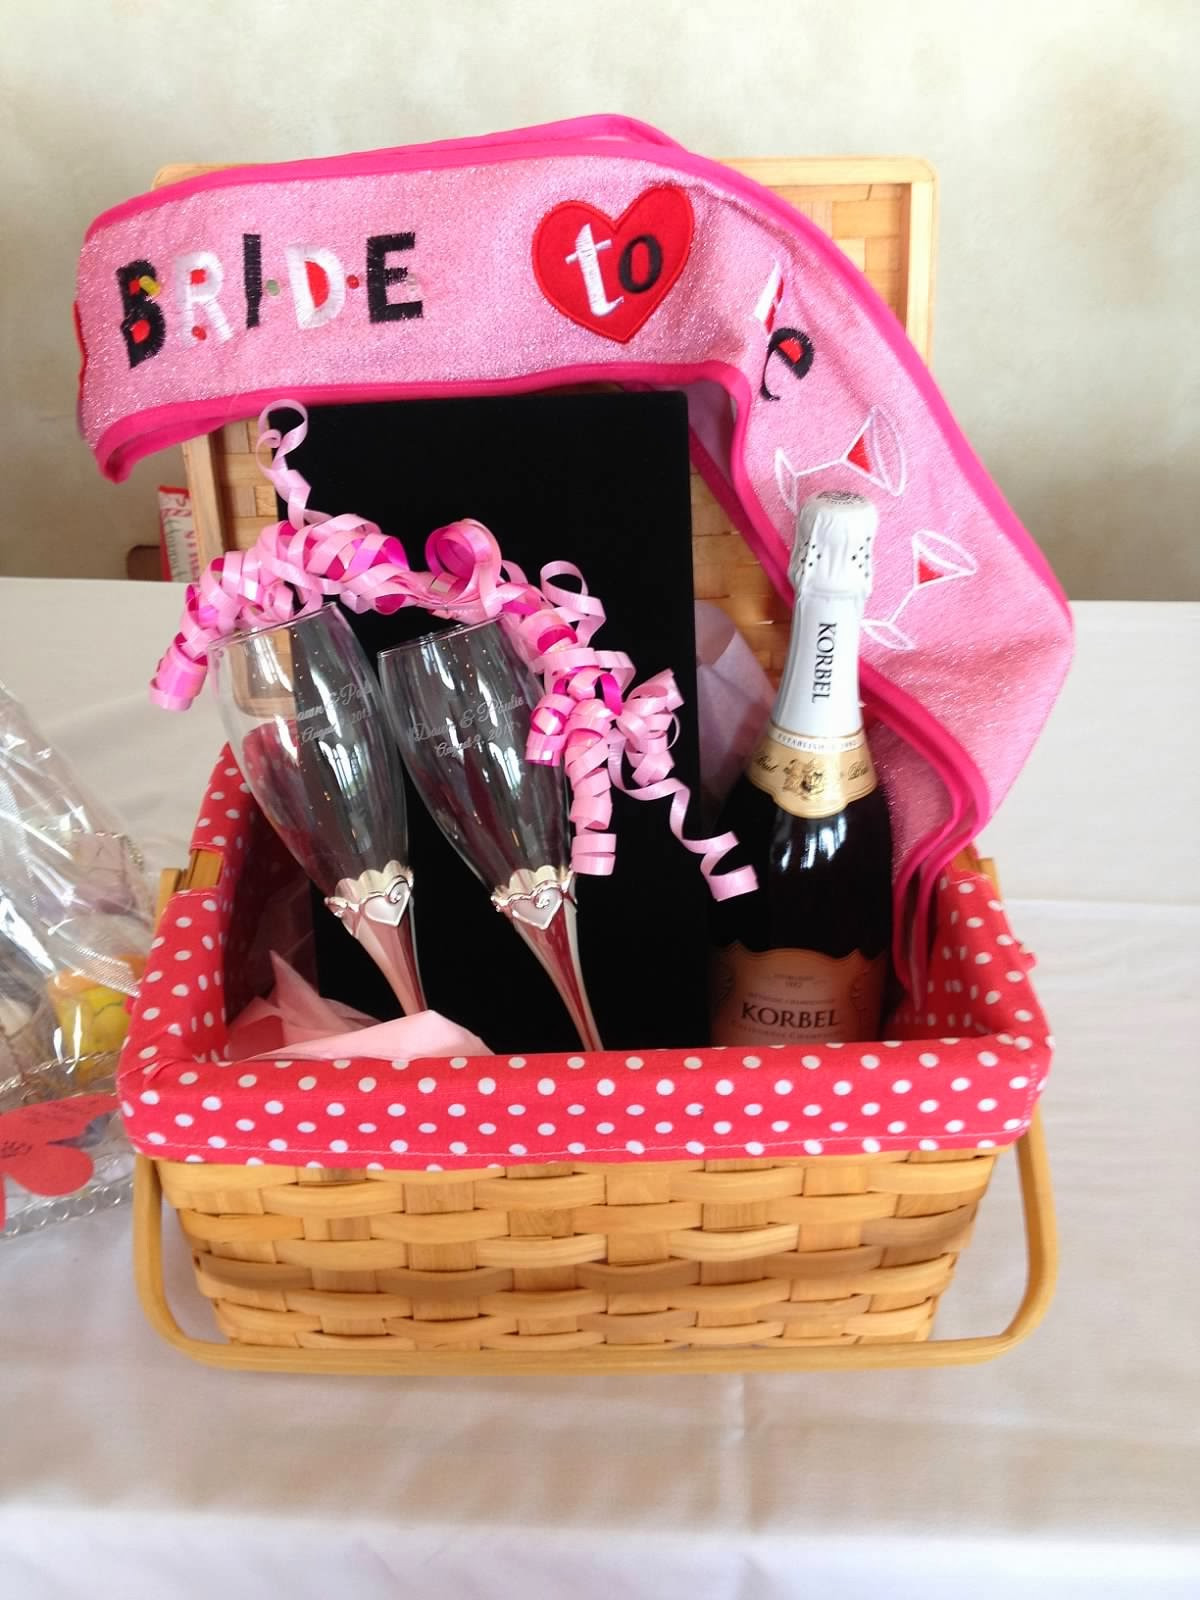 Best ideas about Wedding Gift Basket Ideas . Save or Pin 2 Girls 1 Year 730 Moments to Wedding Wednesdays Now.